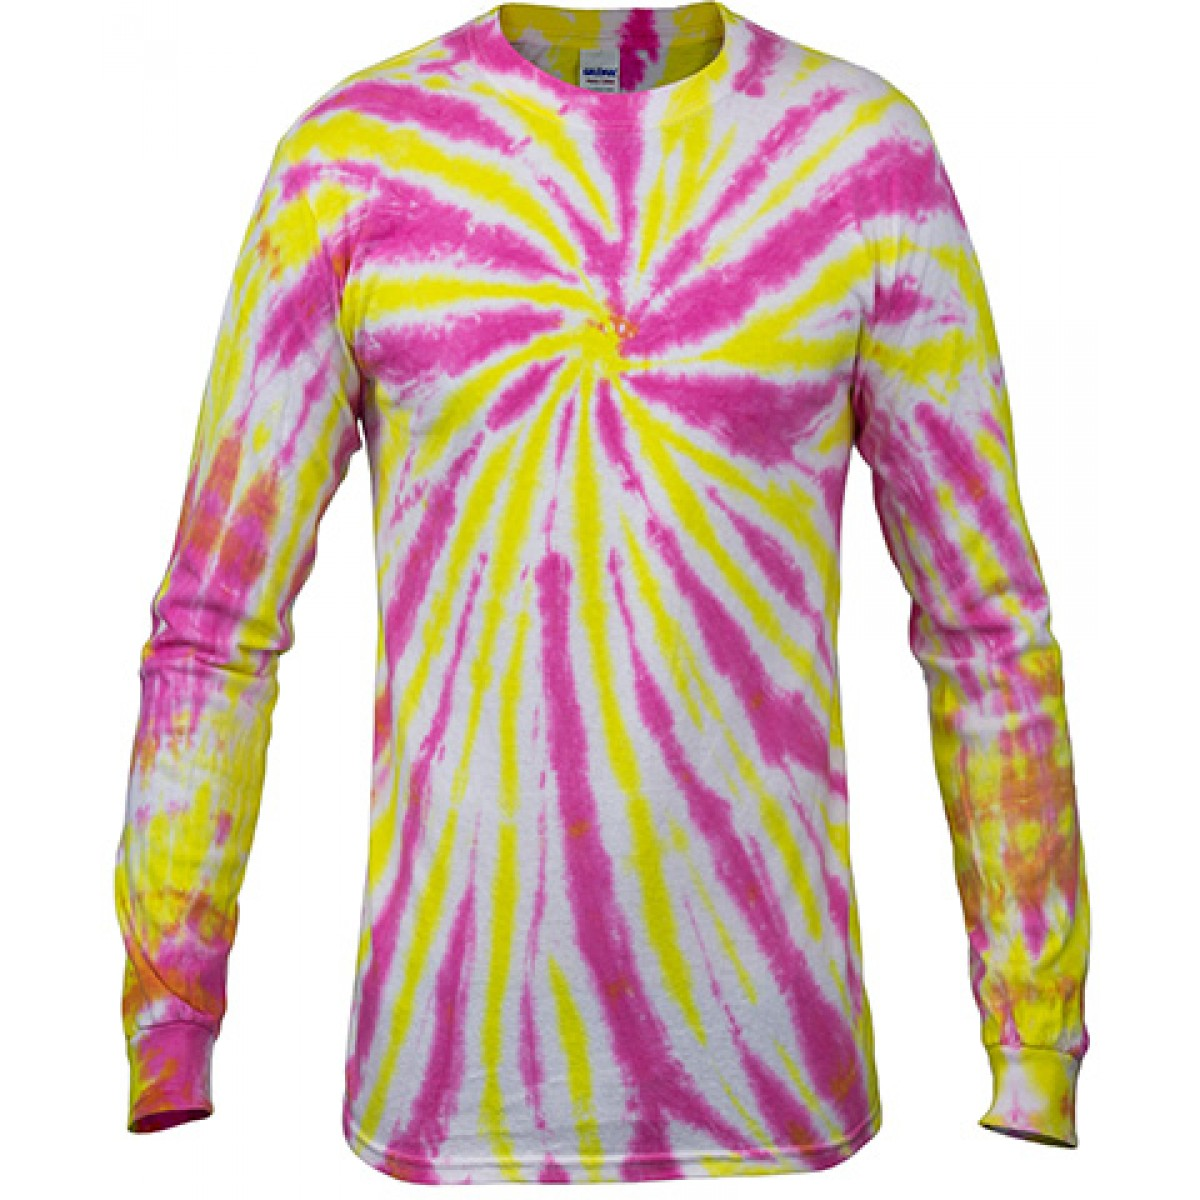 Multi Color Tie-Dye Long Sleeve Shirt -Pink-YM